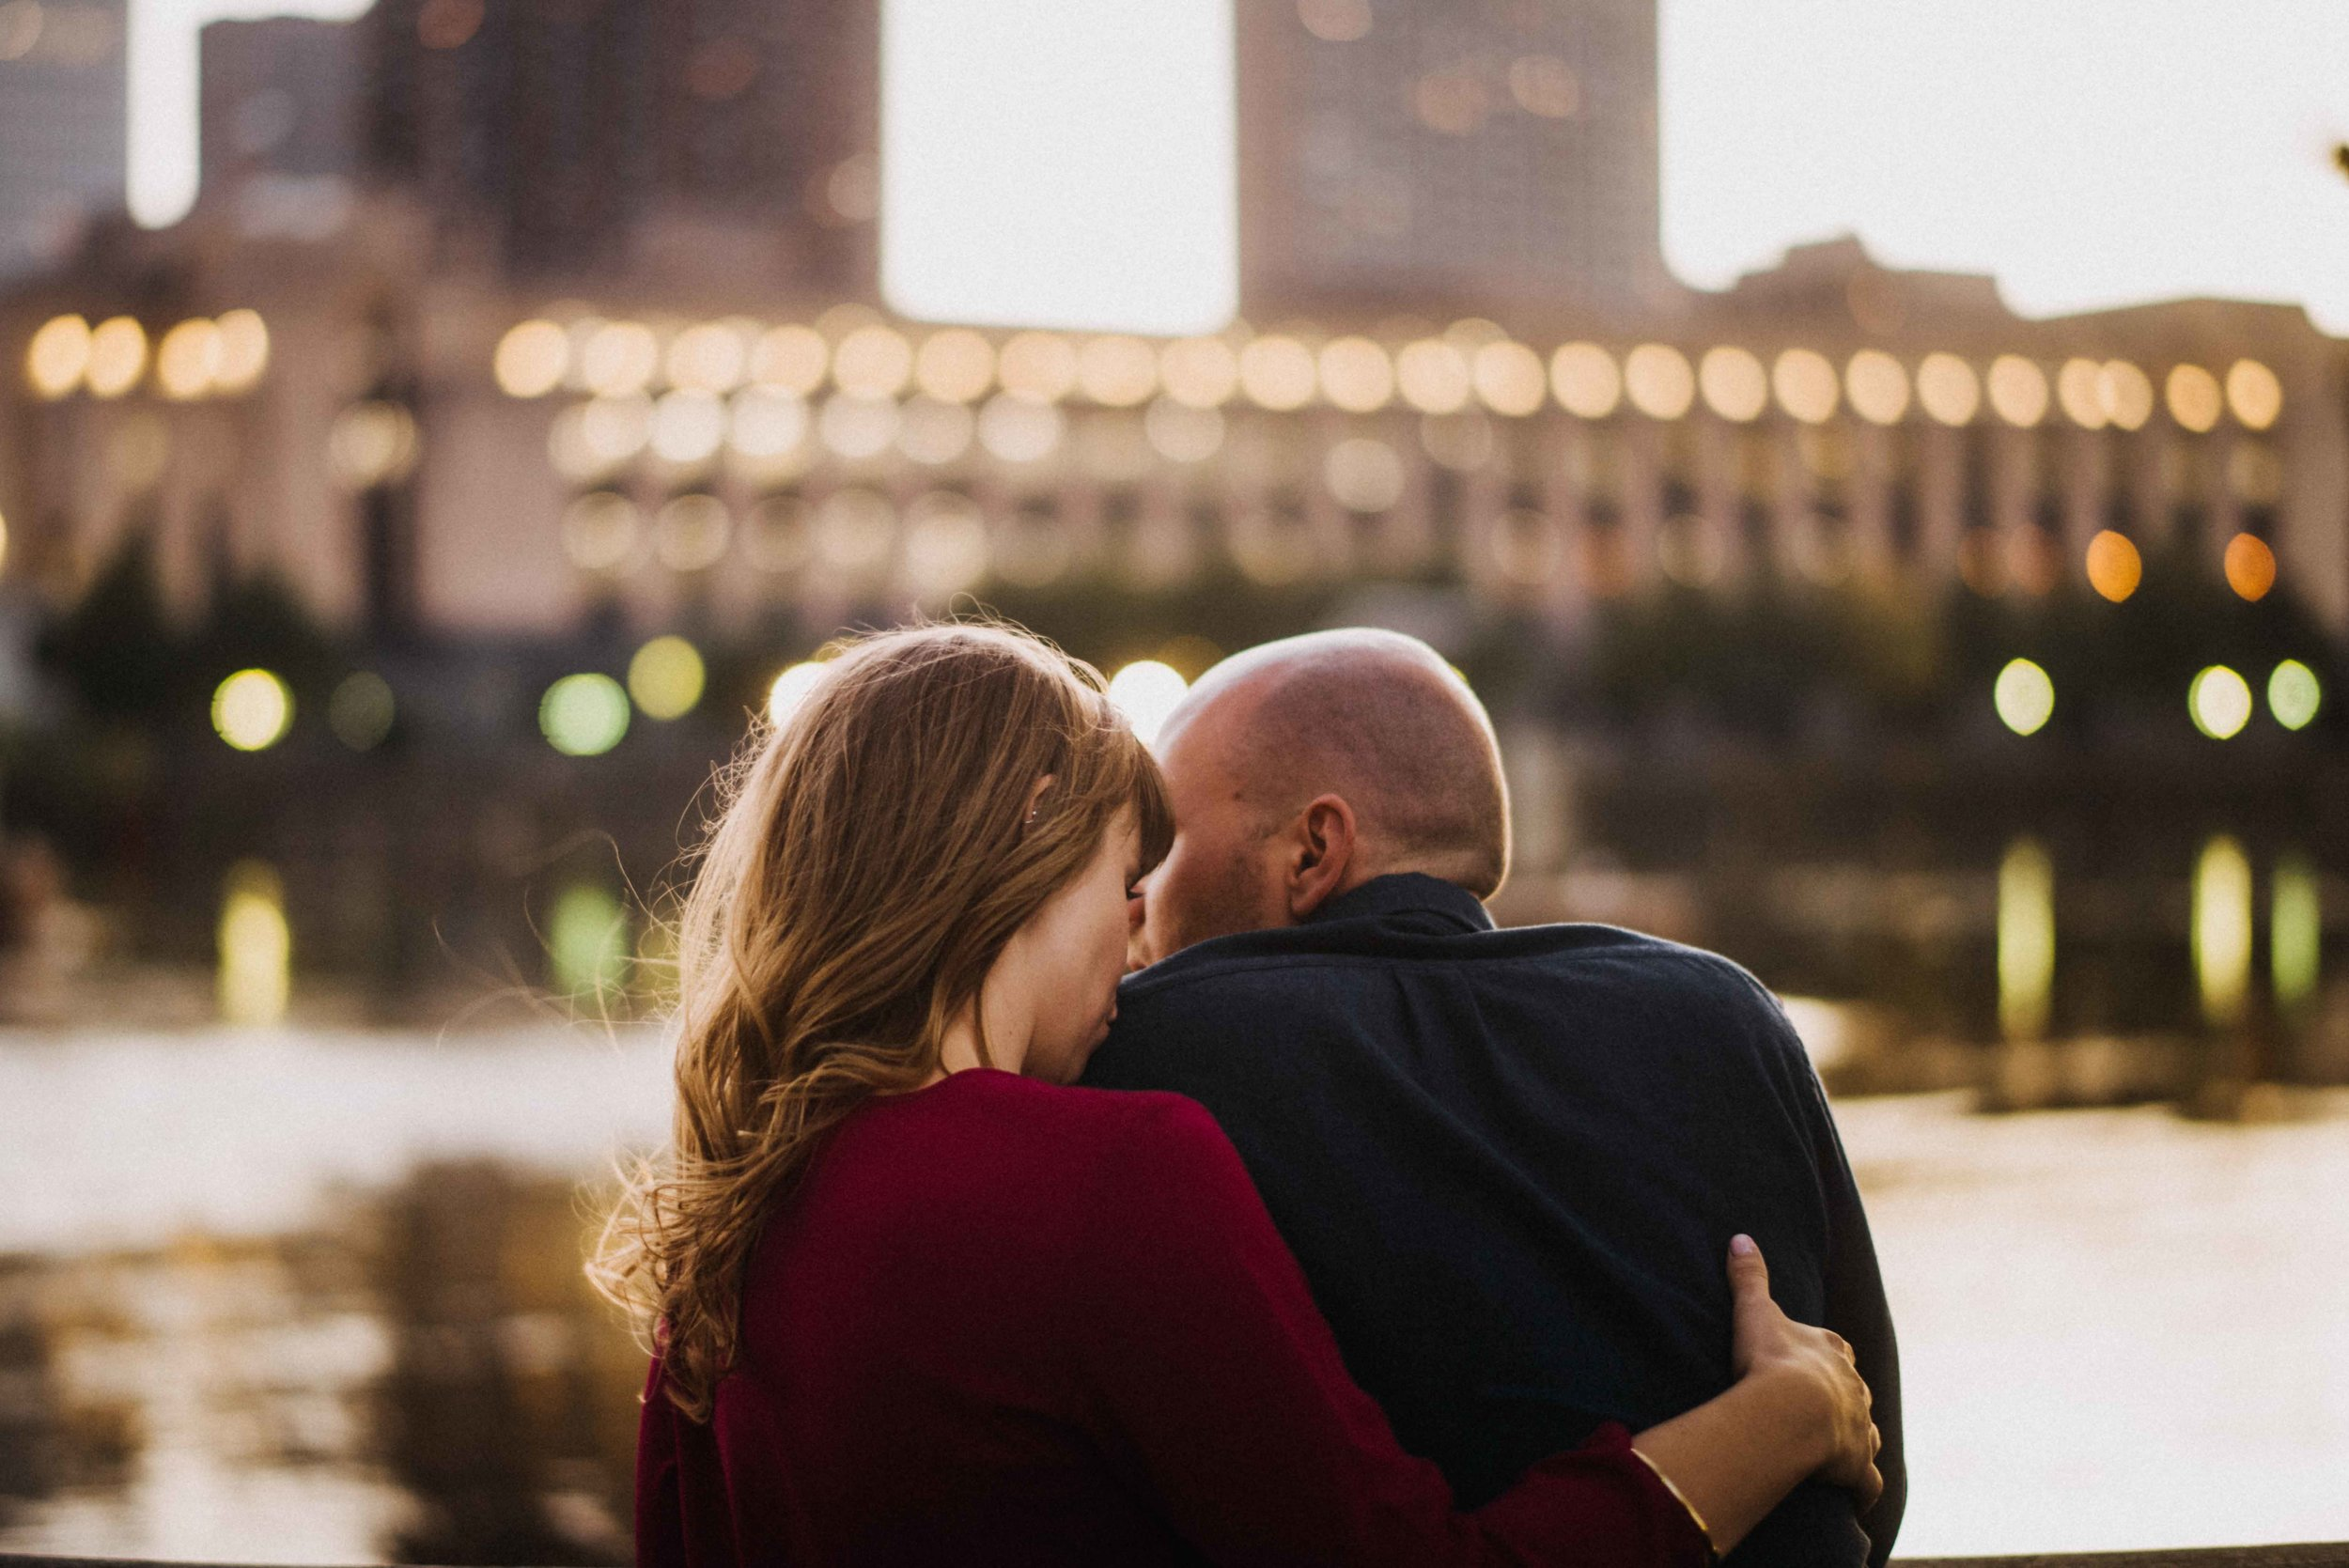 modist_brewing_minneapolis_minnesota_wedding_photography_engagement_session (28 of 32).JPG